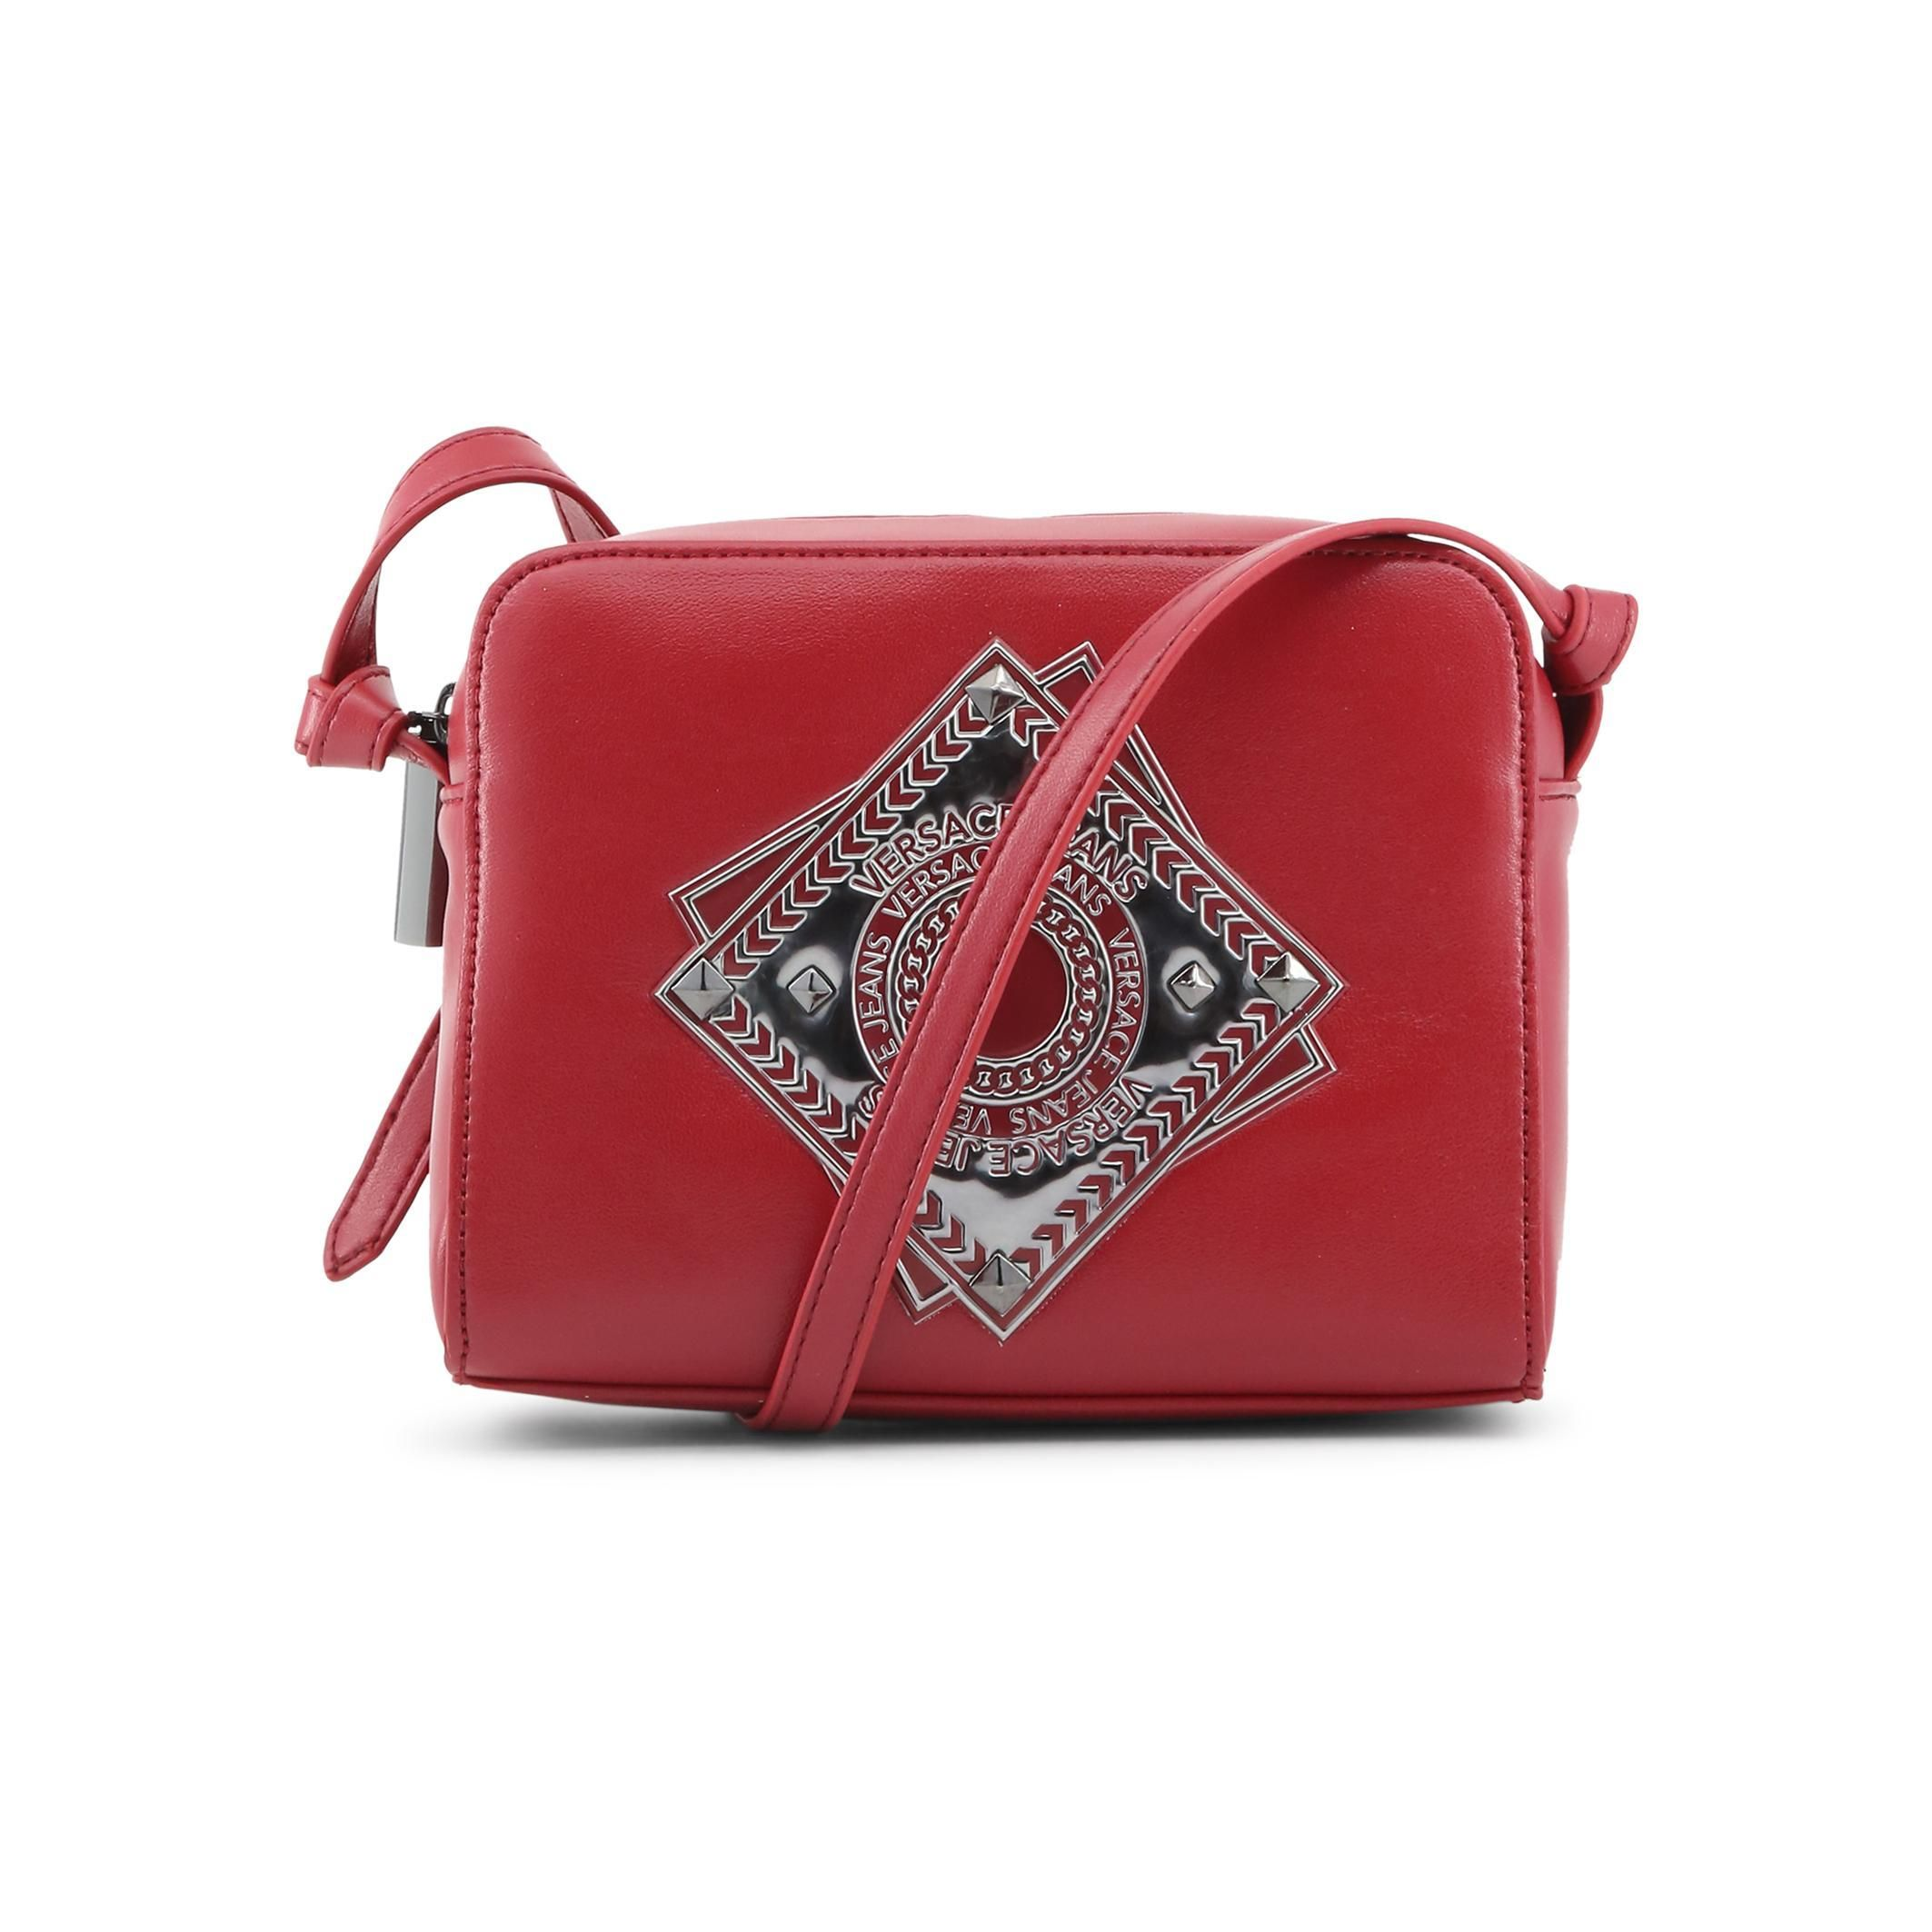 c78c6bae2cd6 Versace Jeans Red Leather Clutch Bag